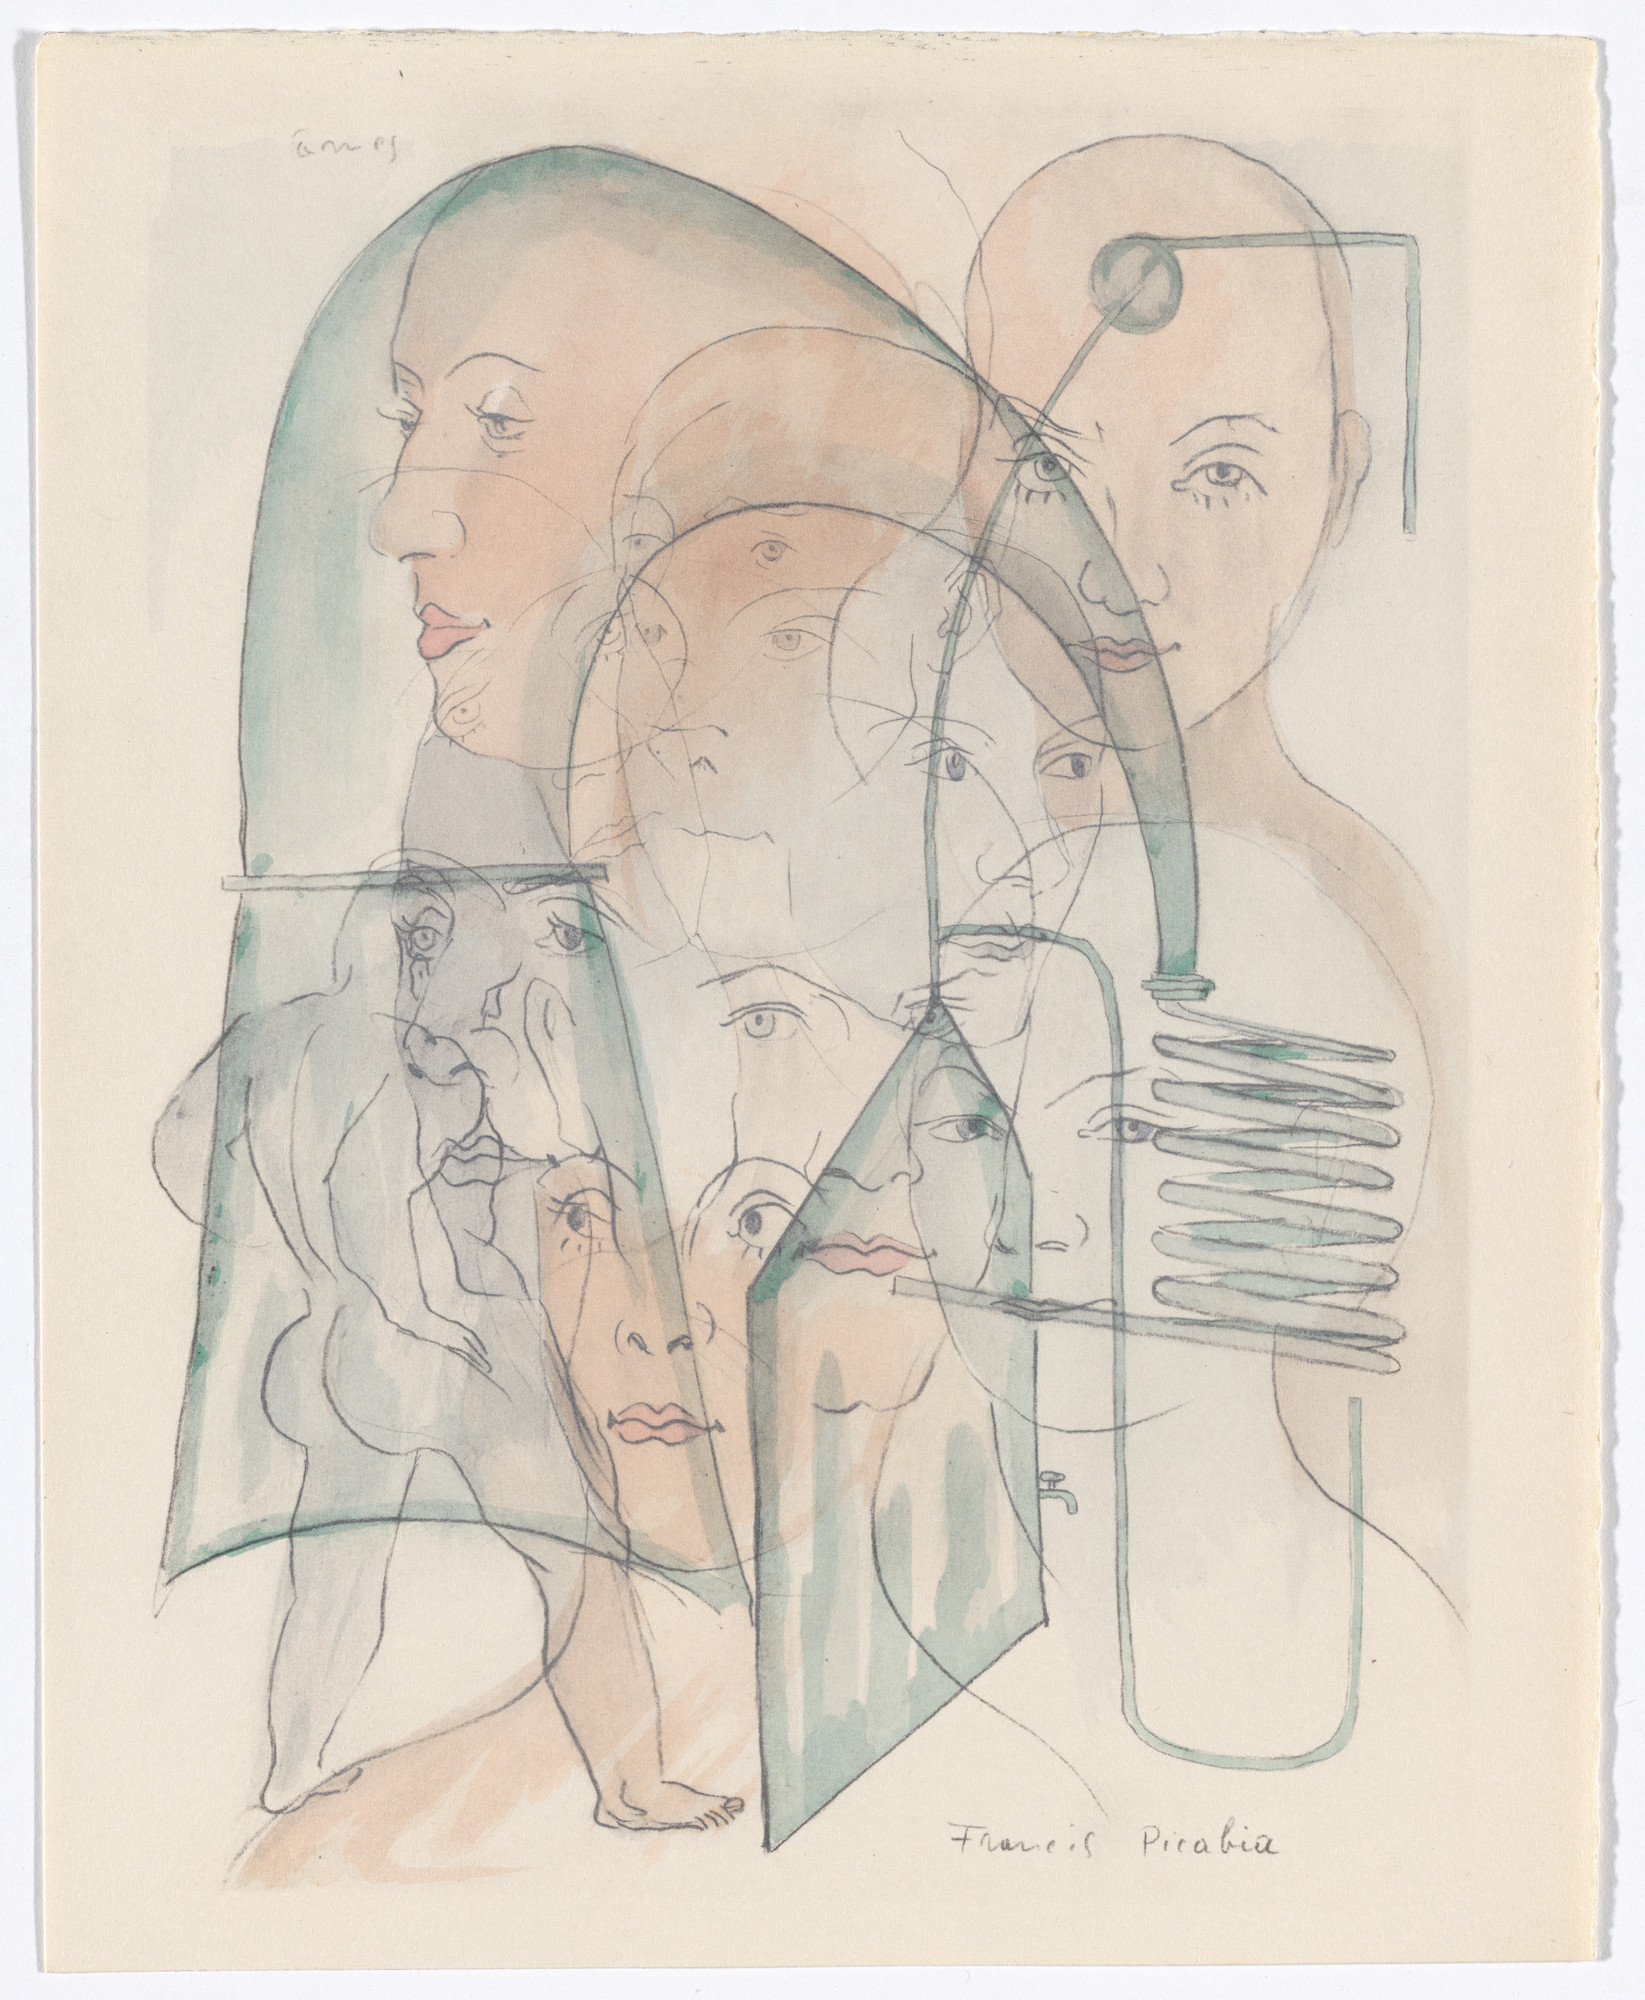 Francis Picabia. Duplicate of Âmes (Souls) from Le Peseur d'âmes (The Weigher of Souls). 1931